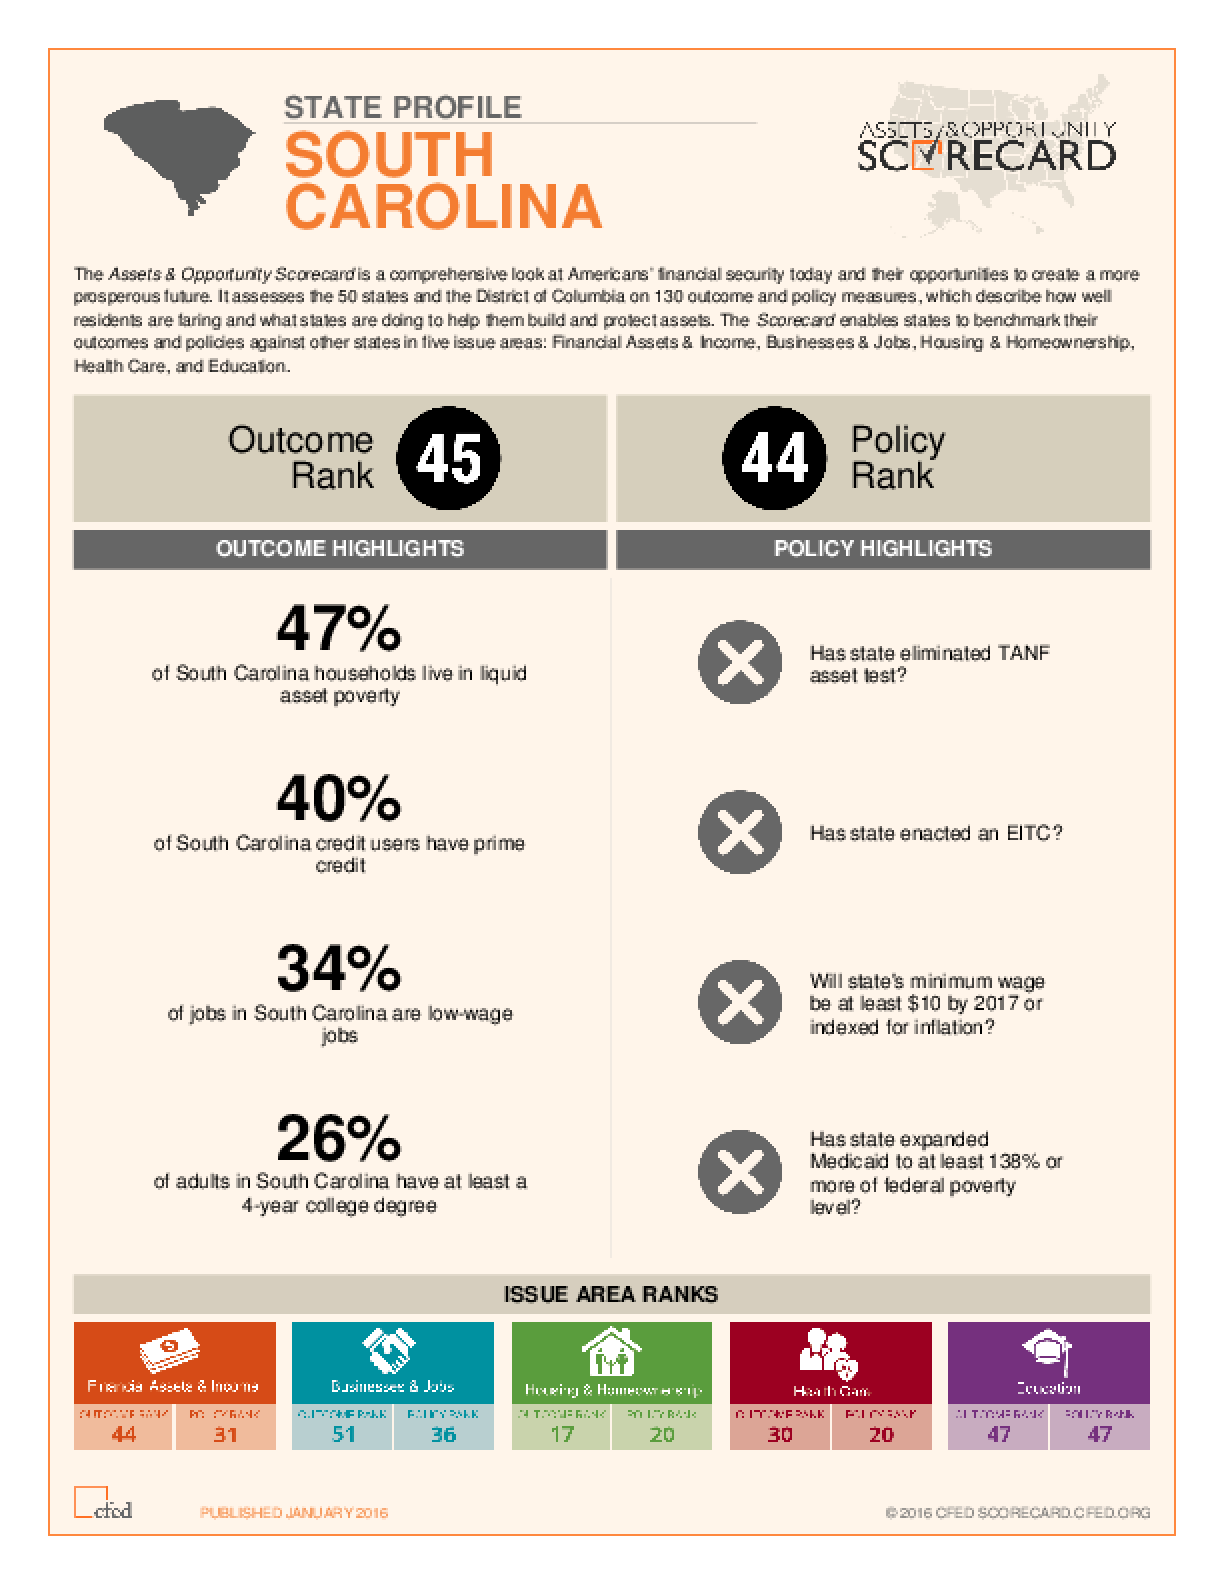 State Profile South Carolina: Assets and Opportunity Scorecard